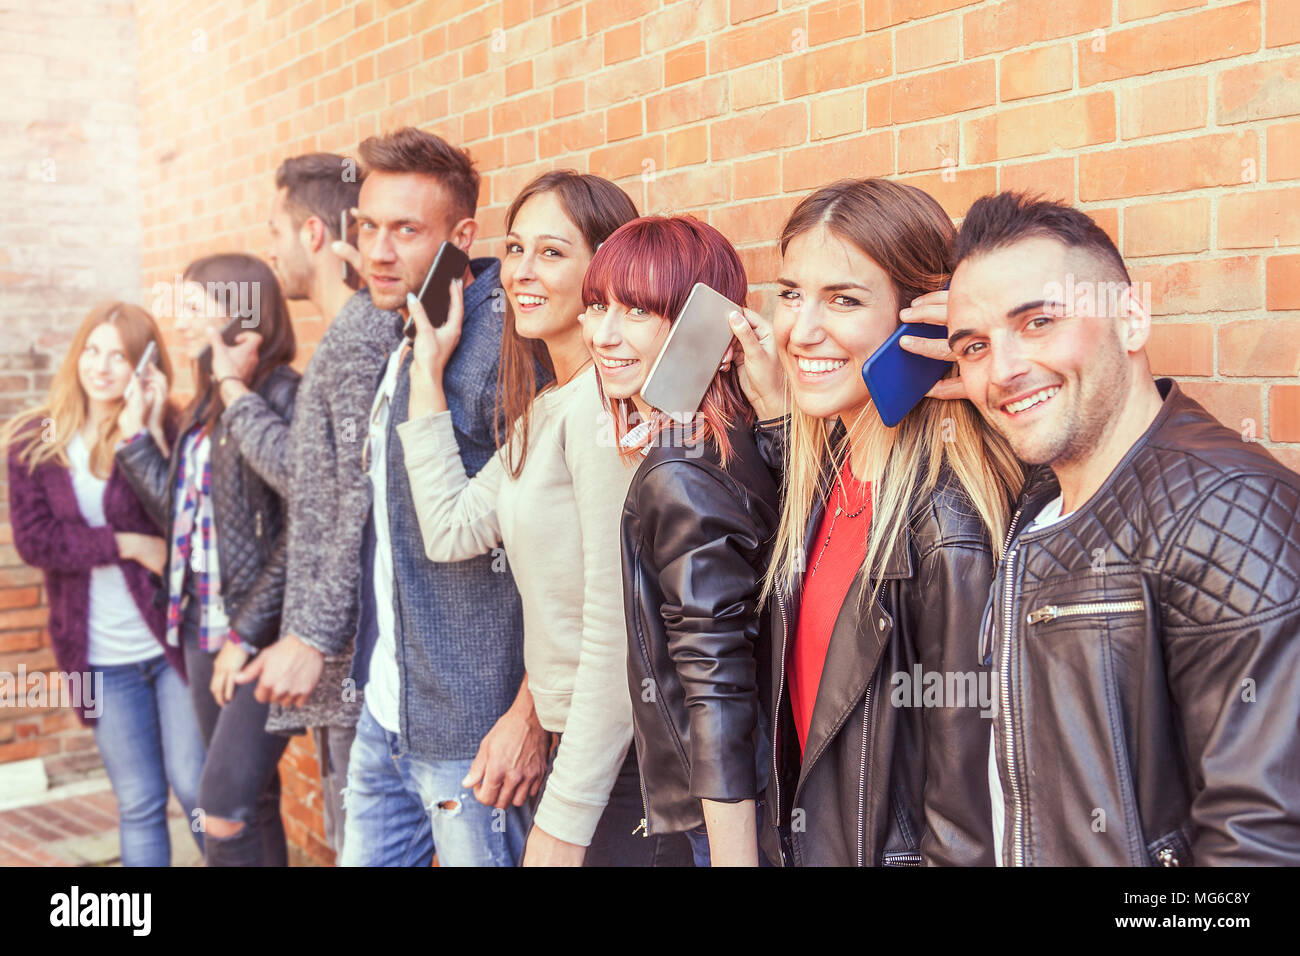 large group of friends using smart phone against a red wall of brick - Young people addicted by mobile smartphone - Technology millennials concept - Stock Image